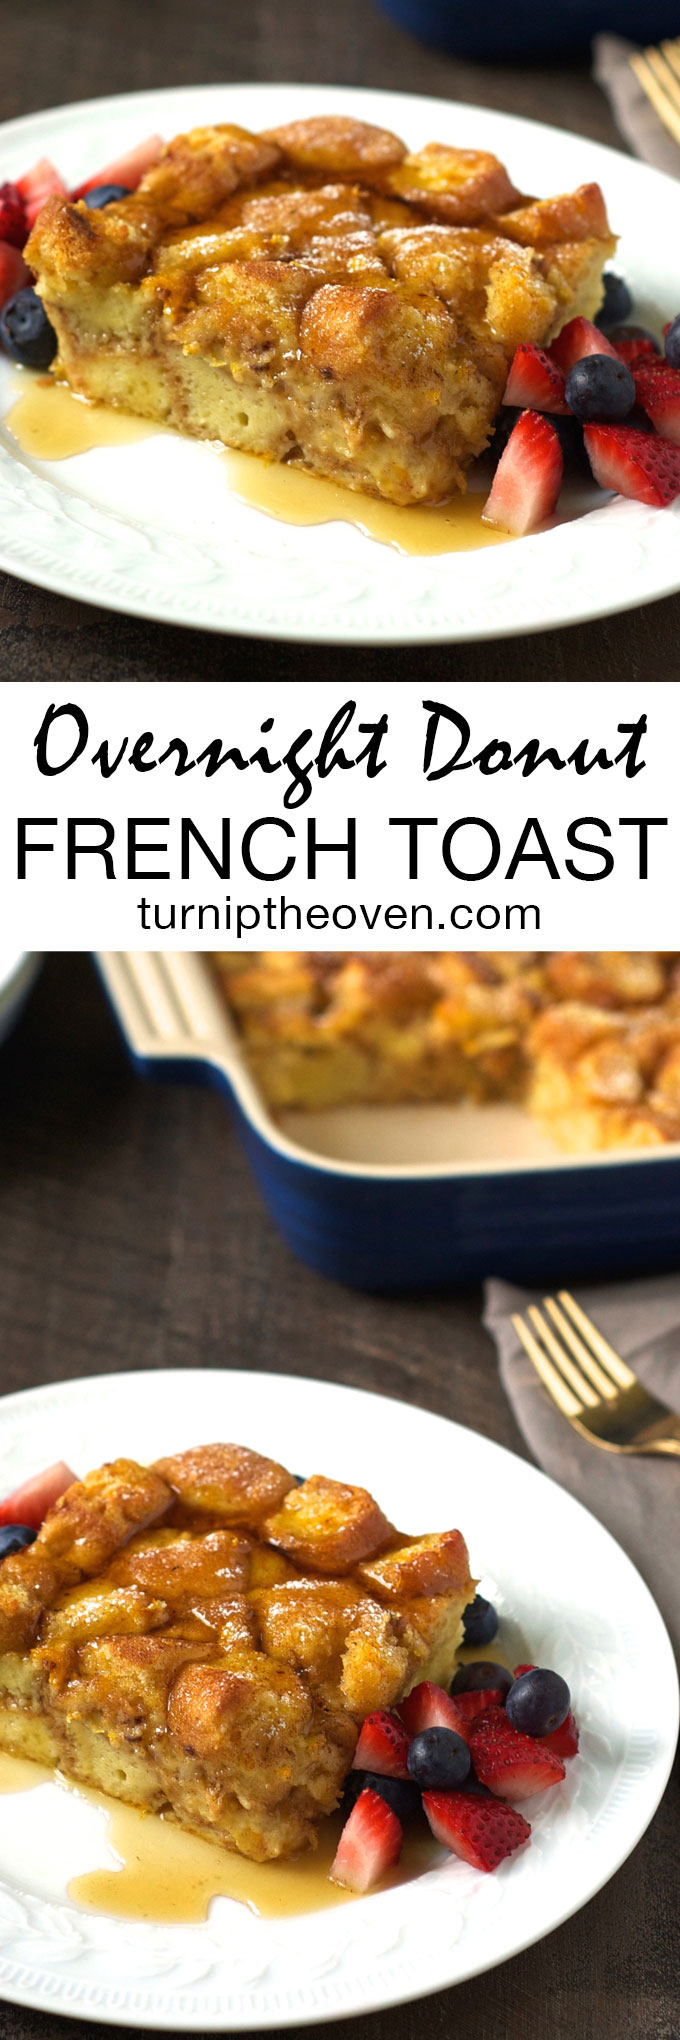 Donuts replace the bread in this indulgent French toast casserole that makes the perfect special occasion breakfast! It couldn't be easier--everything is prepped the night before, then just bake in the morning and top with lots of maple syrup.